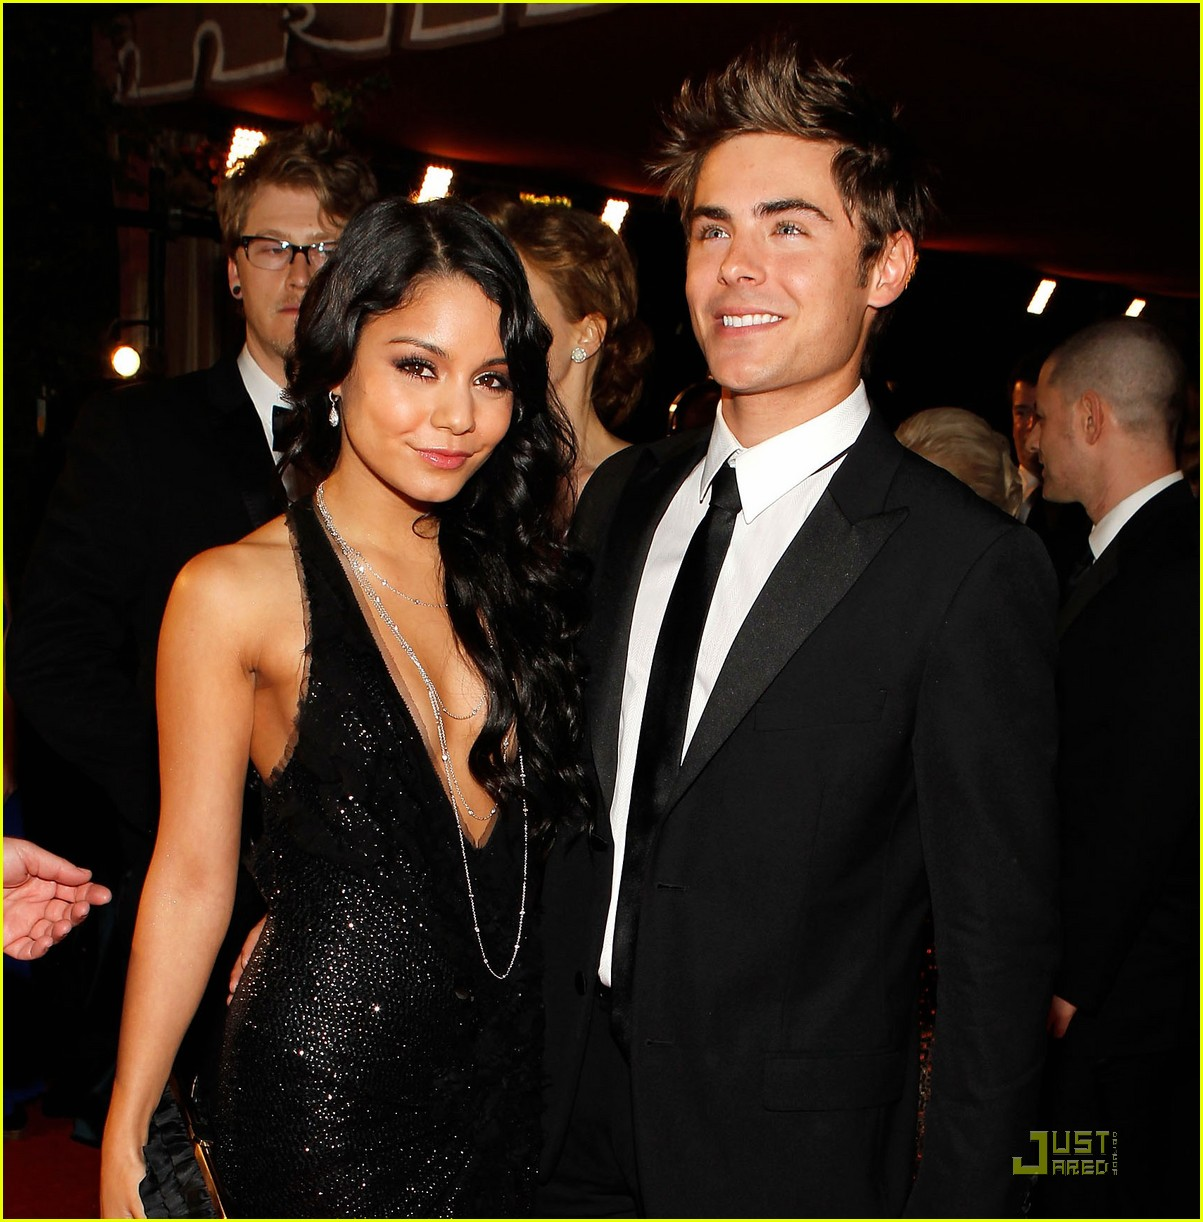 is Vanessa Hudgens And Zac Efron Engaged 2010 Zac Efron Vanessa Hudgens